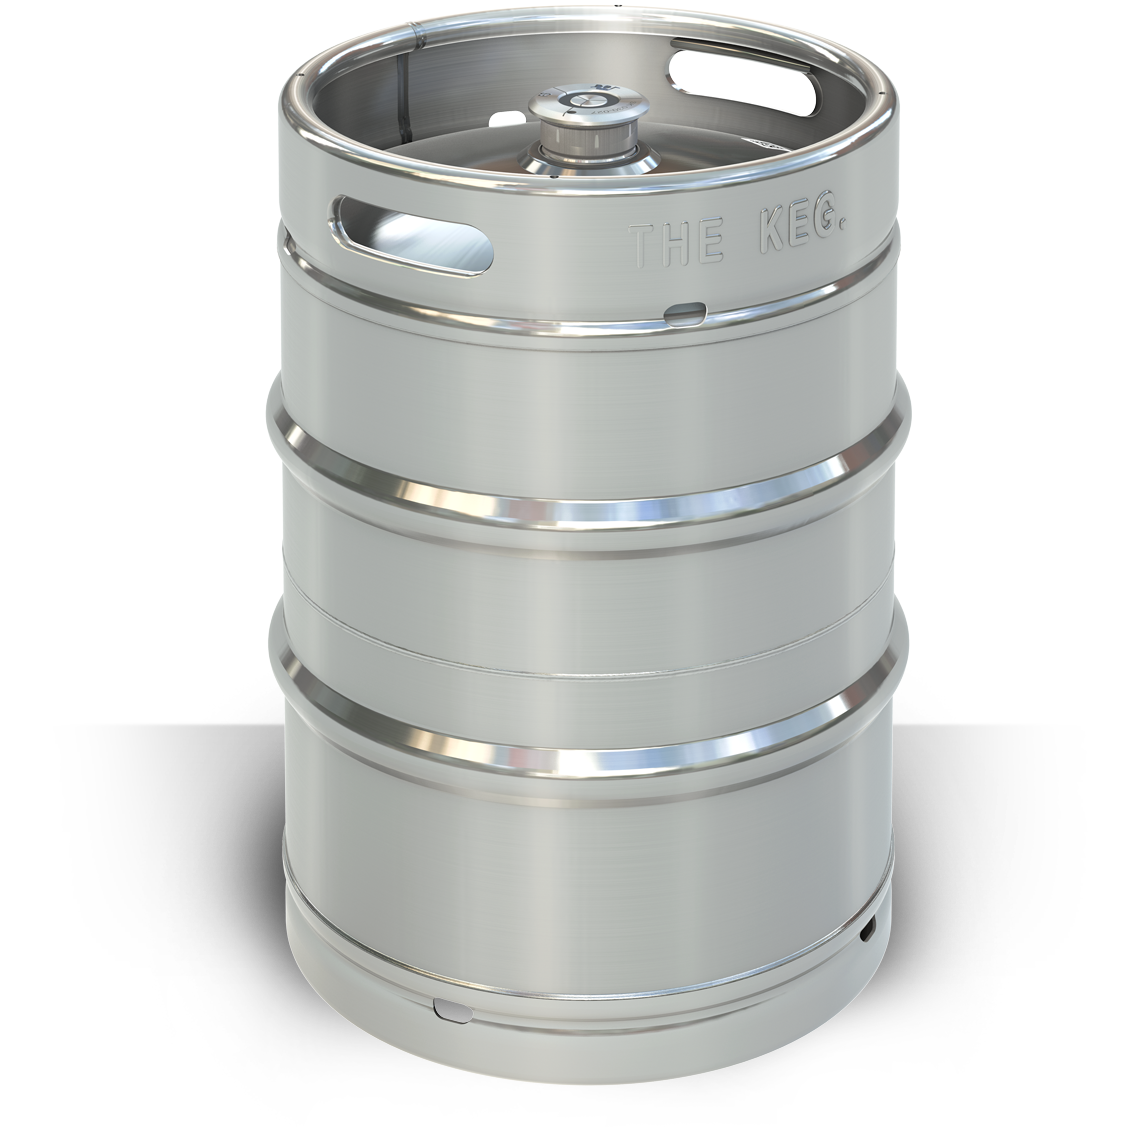 The Din Keg Our Slim And Individual Keg